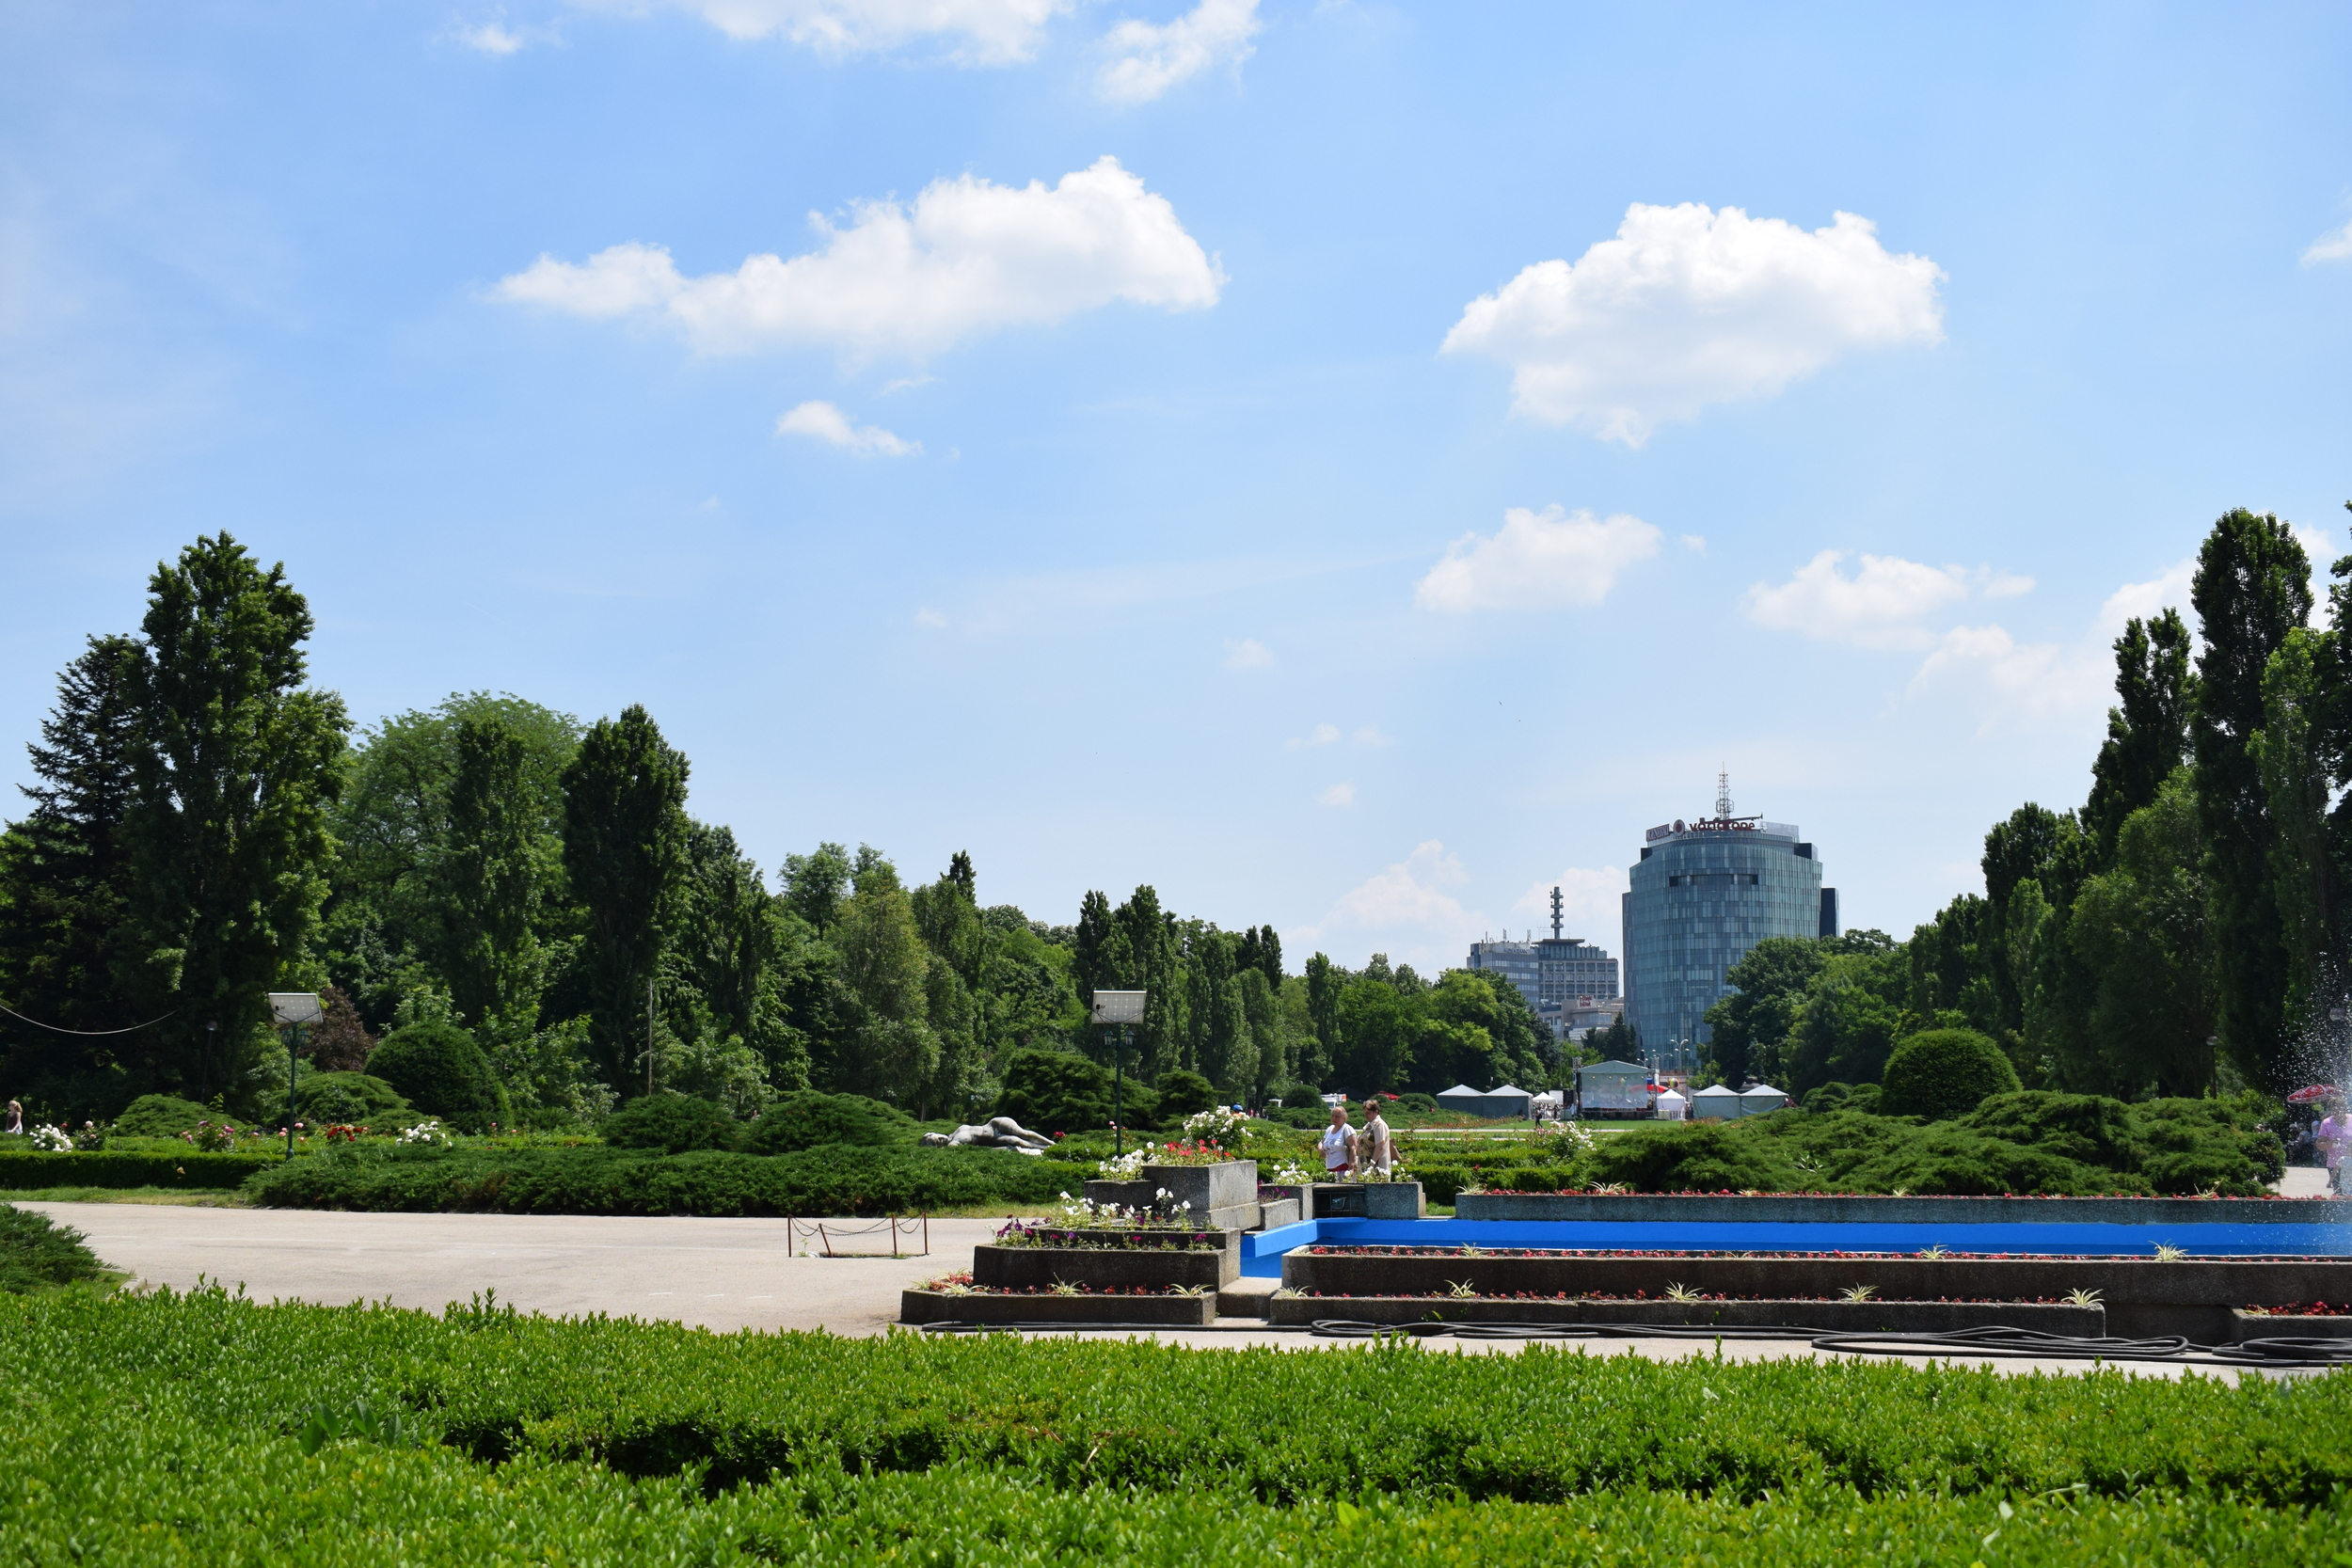 Herastrau Park is a nice place to take a break from city life.